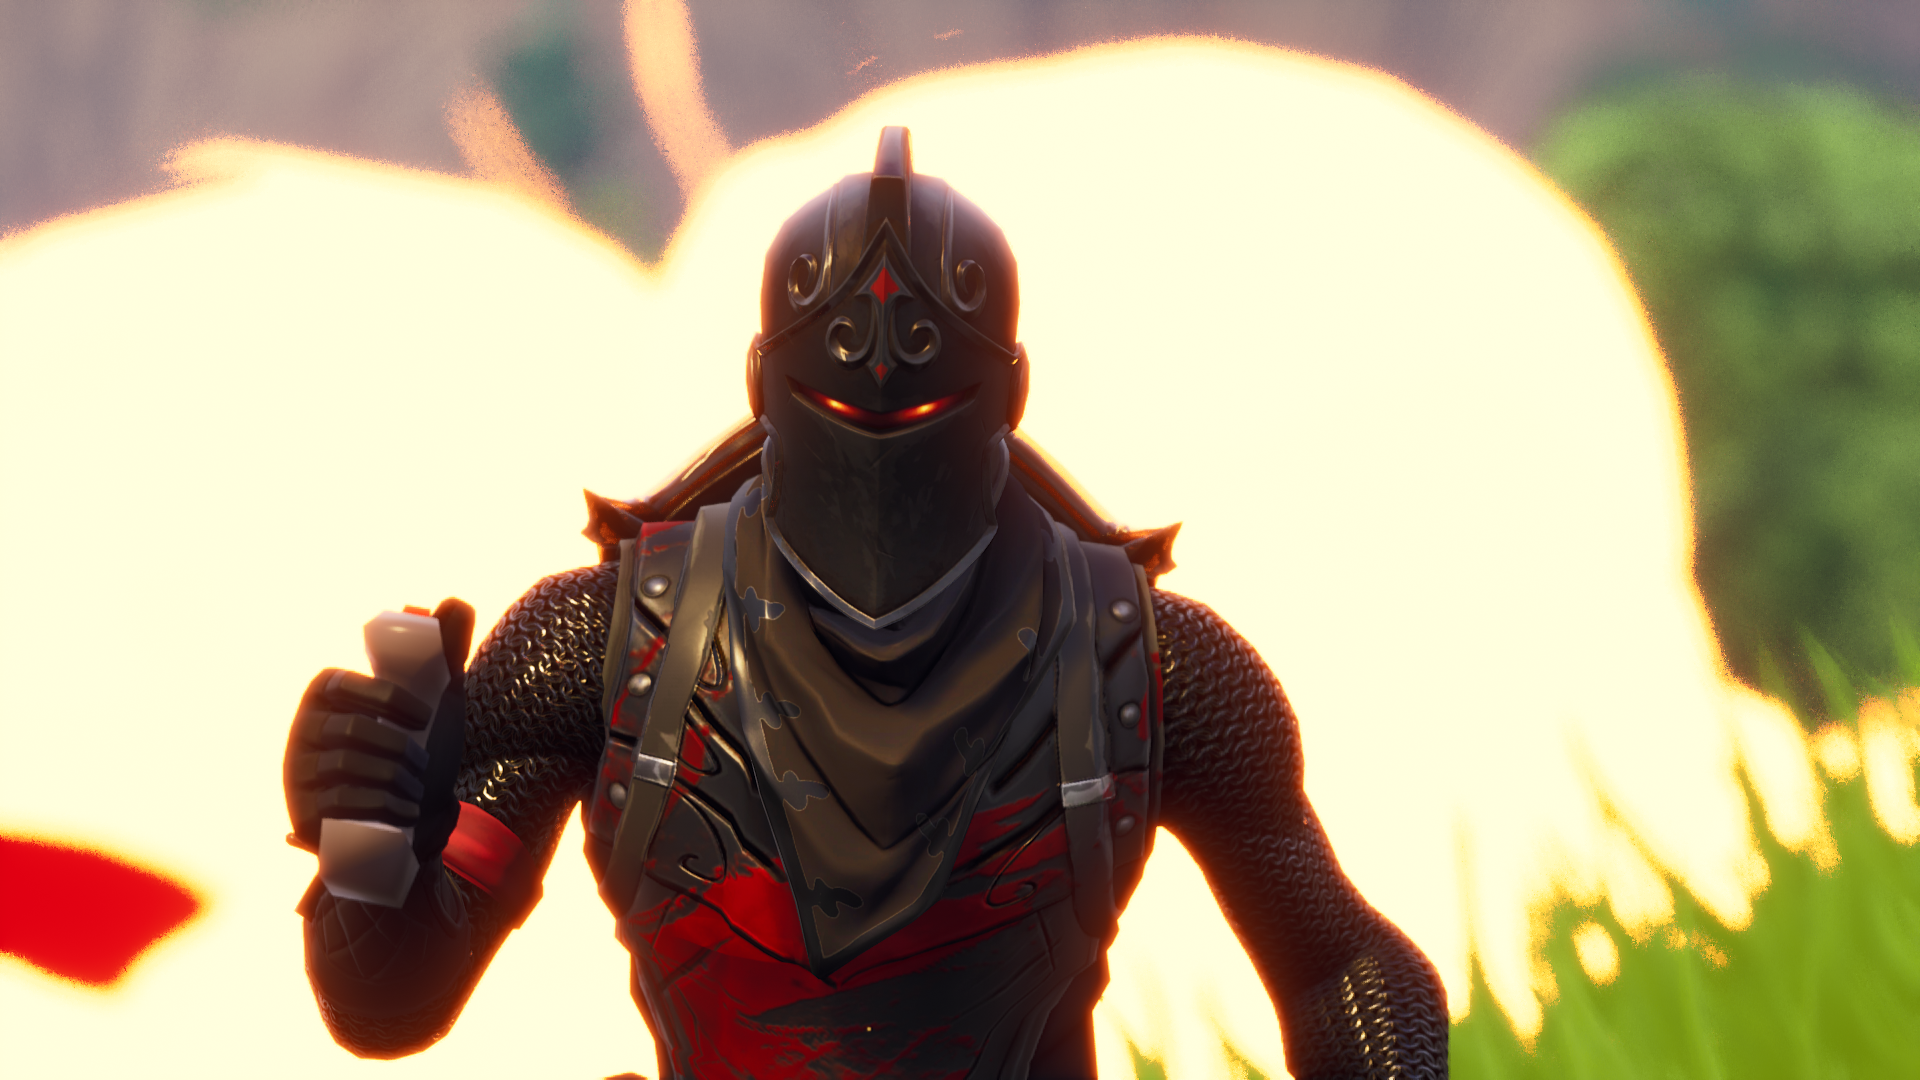 Black Knight Fortnite Wallpaper 4k 1920x1080 Download Hd Wallpaper Wallpapertip